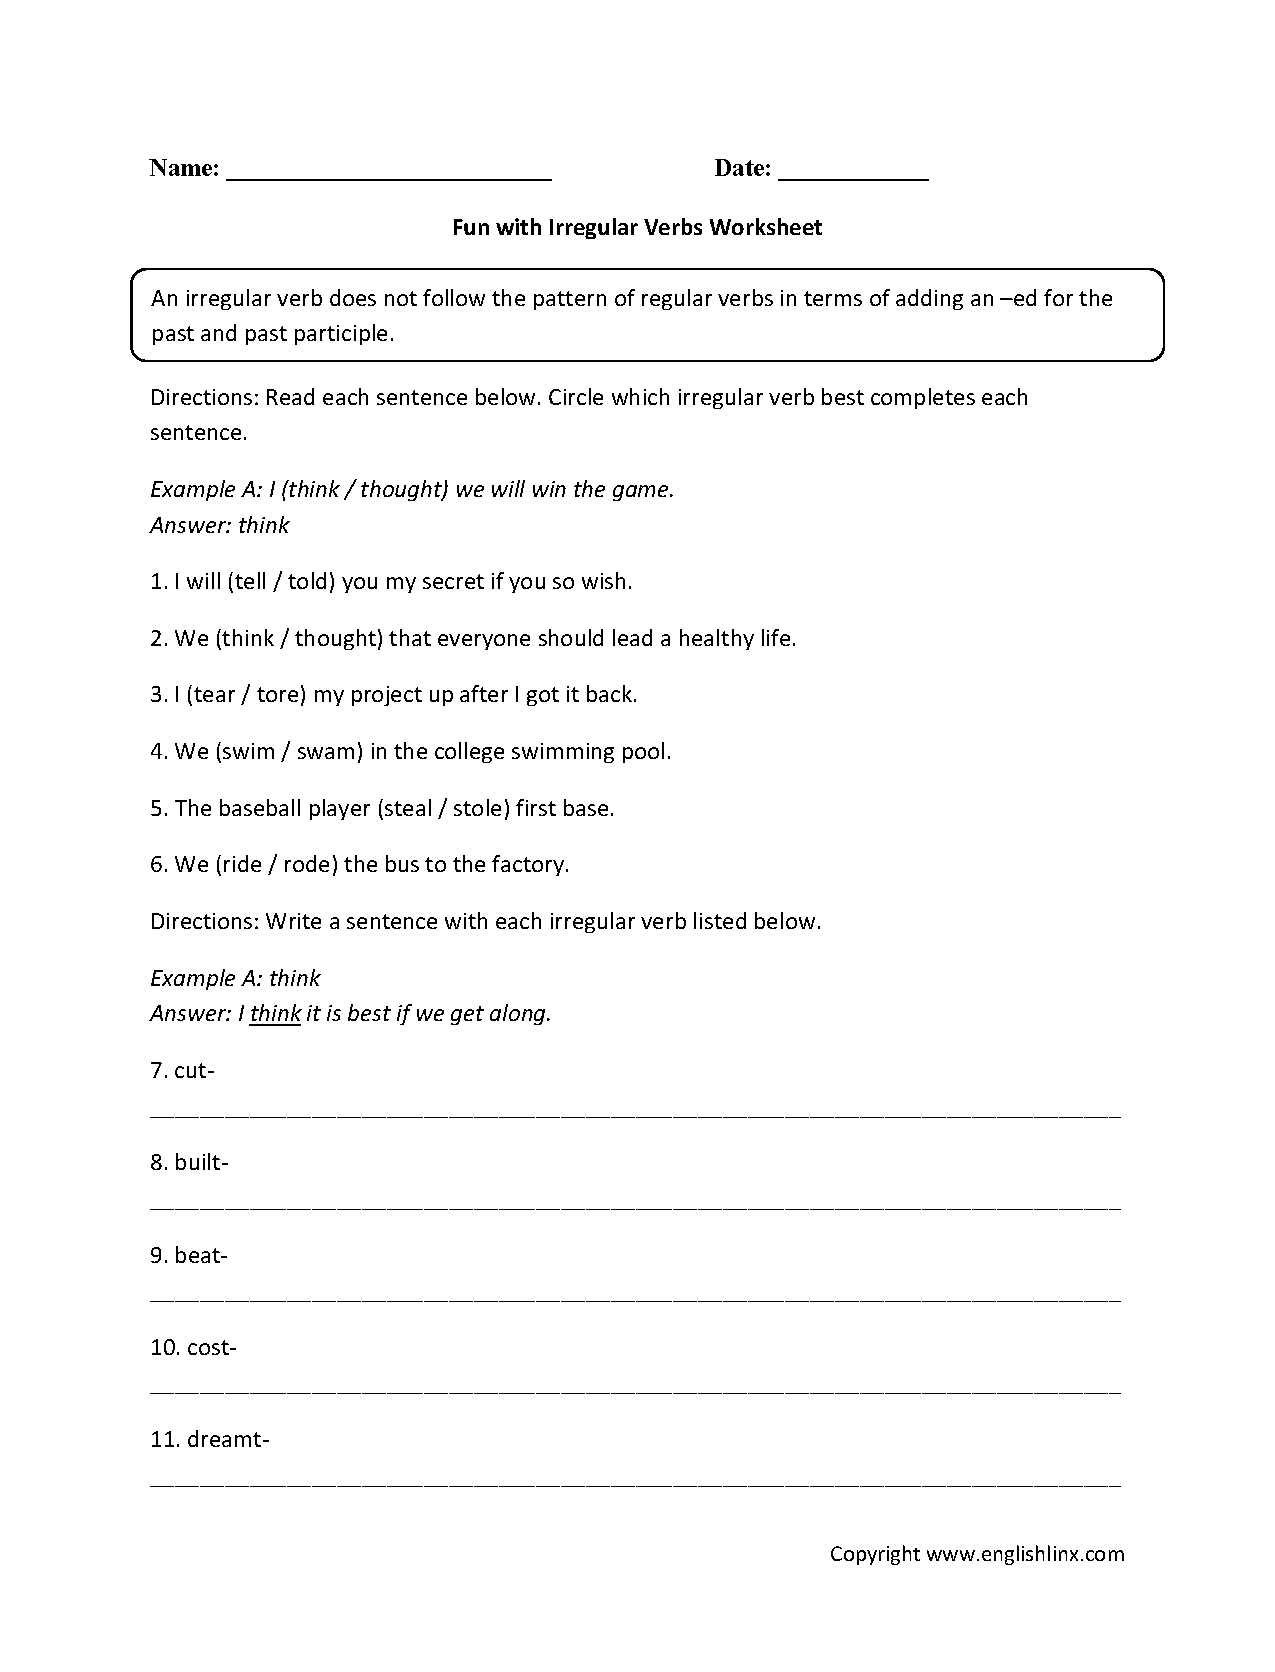 worksheet Verb Worksheets 2nd Grade verbs worksheets irregular worksheets